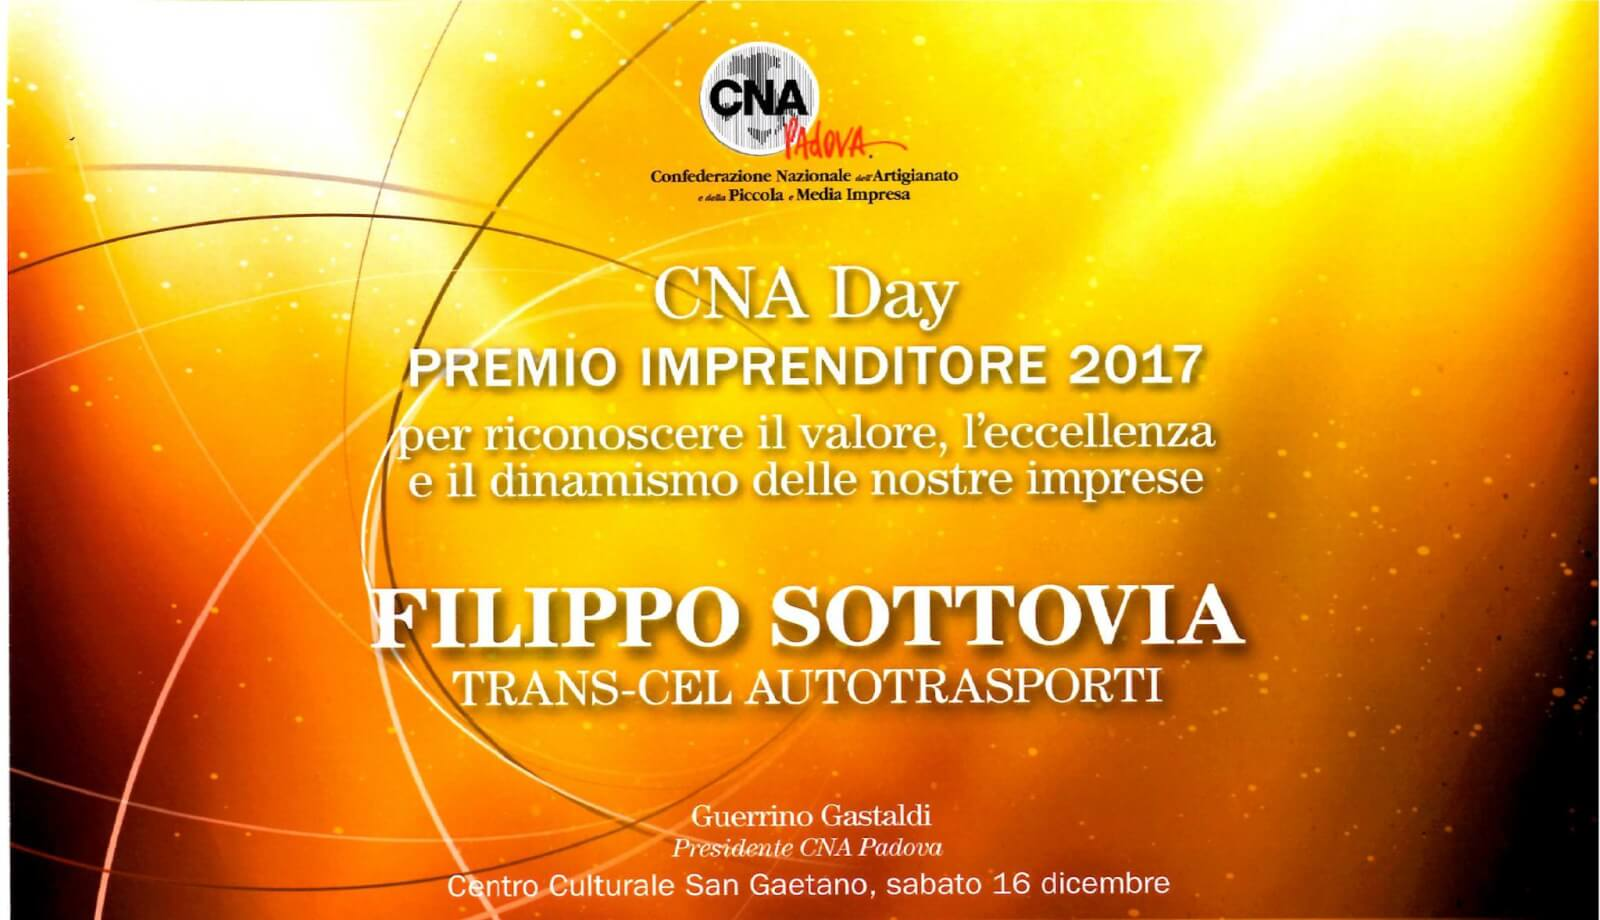 CNA Day – Enterpreneurs awards 2017 to Filippo Sottovia